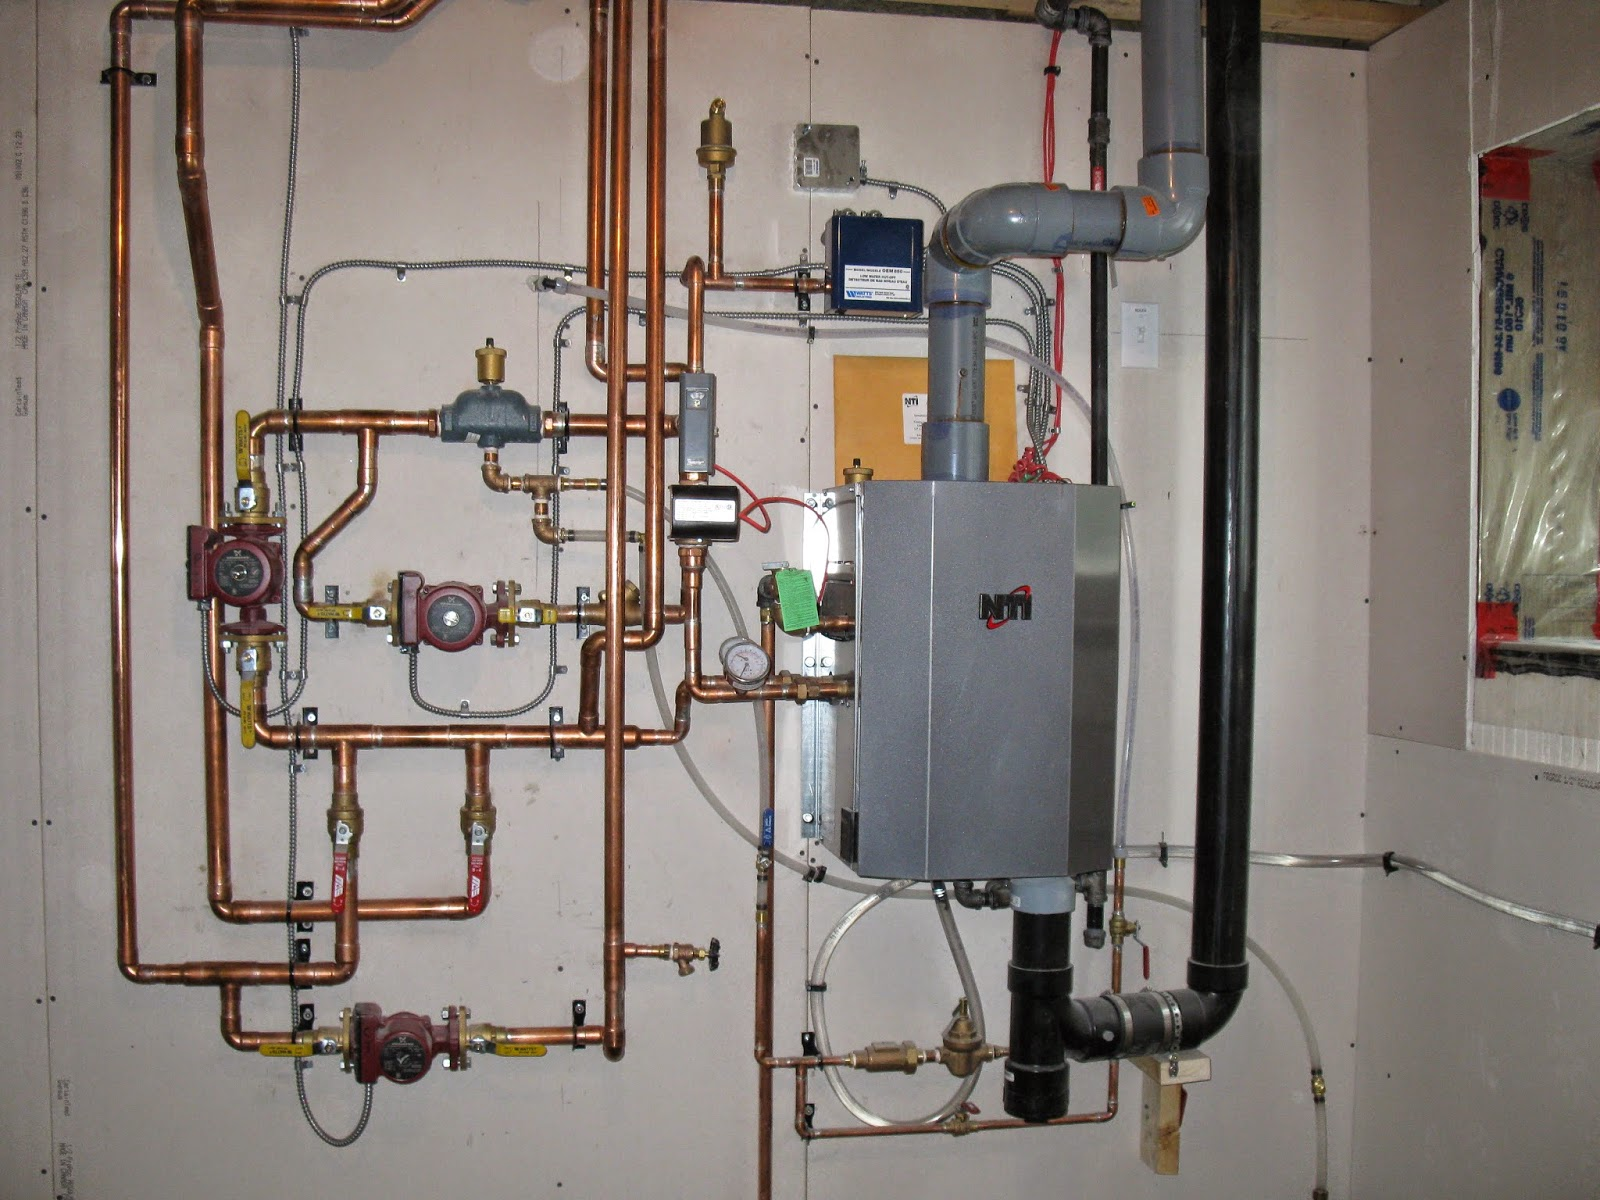 Residential boiler piping diagram residential get free for The best heating system for home